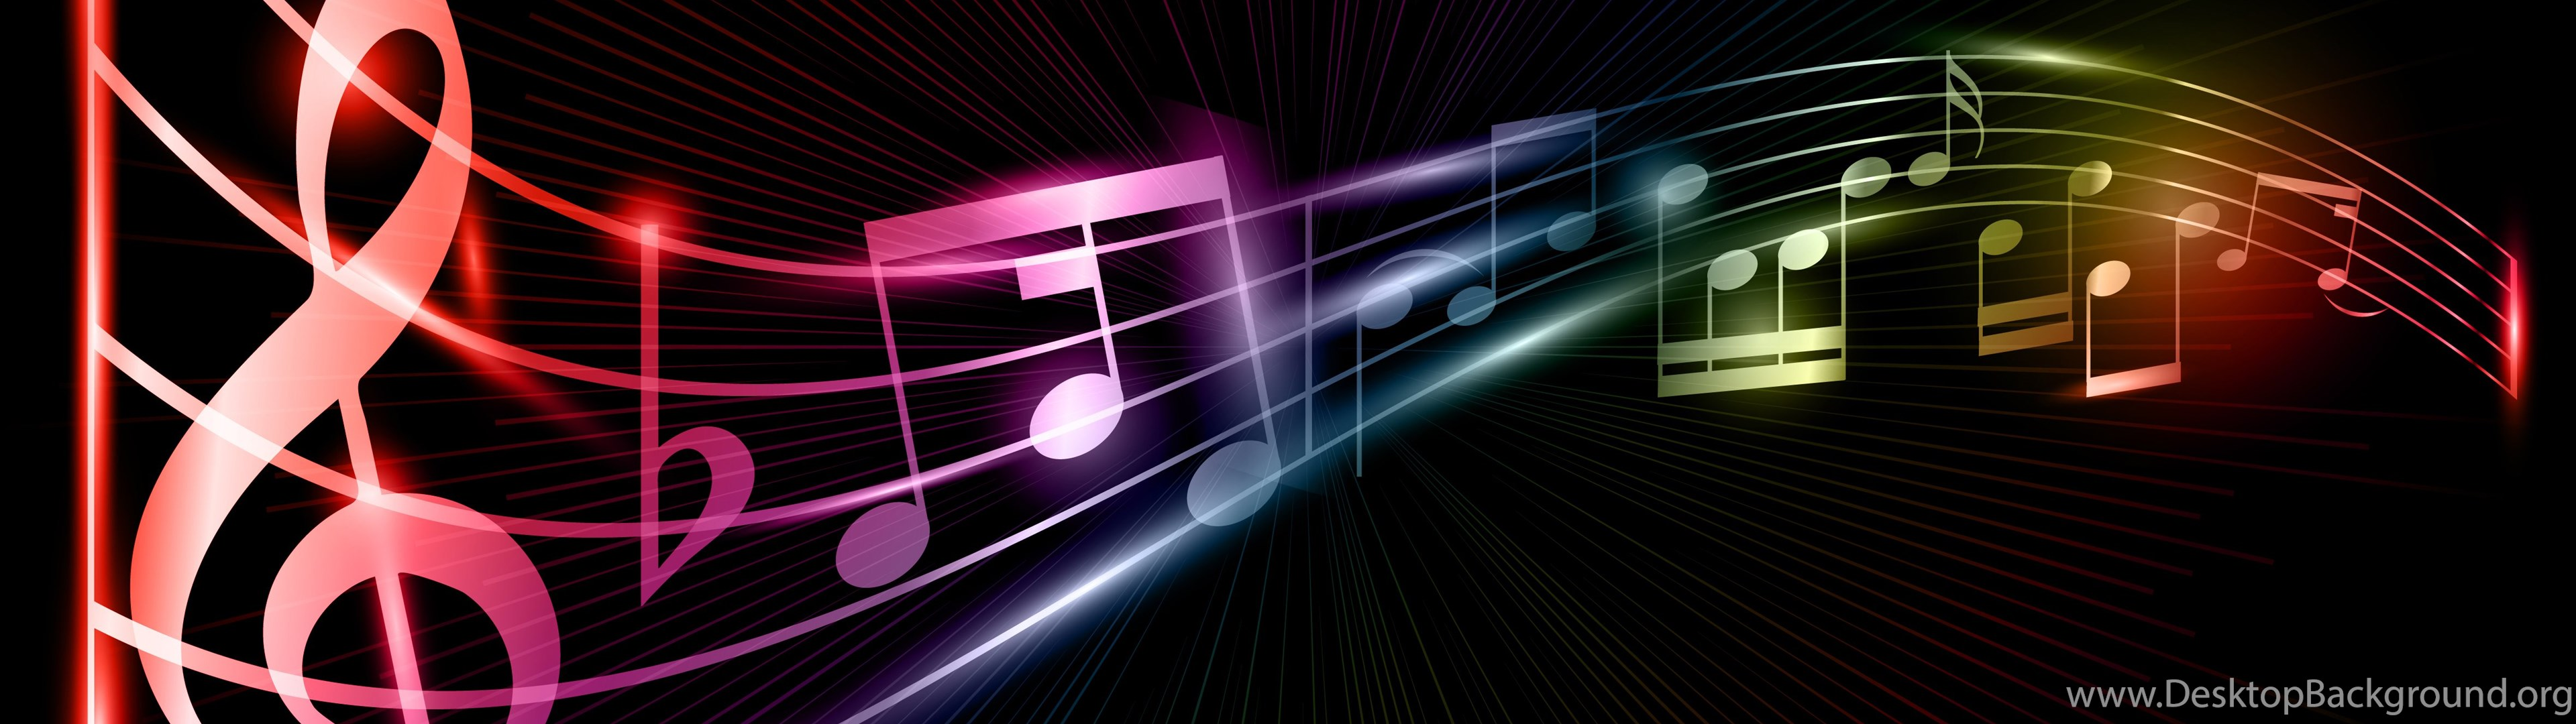 Fantastic Wallpaper Music Rainbow - 740368_cool-rainbow-music-backgrounds_4724x4742_h  Pic_723138.jpg